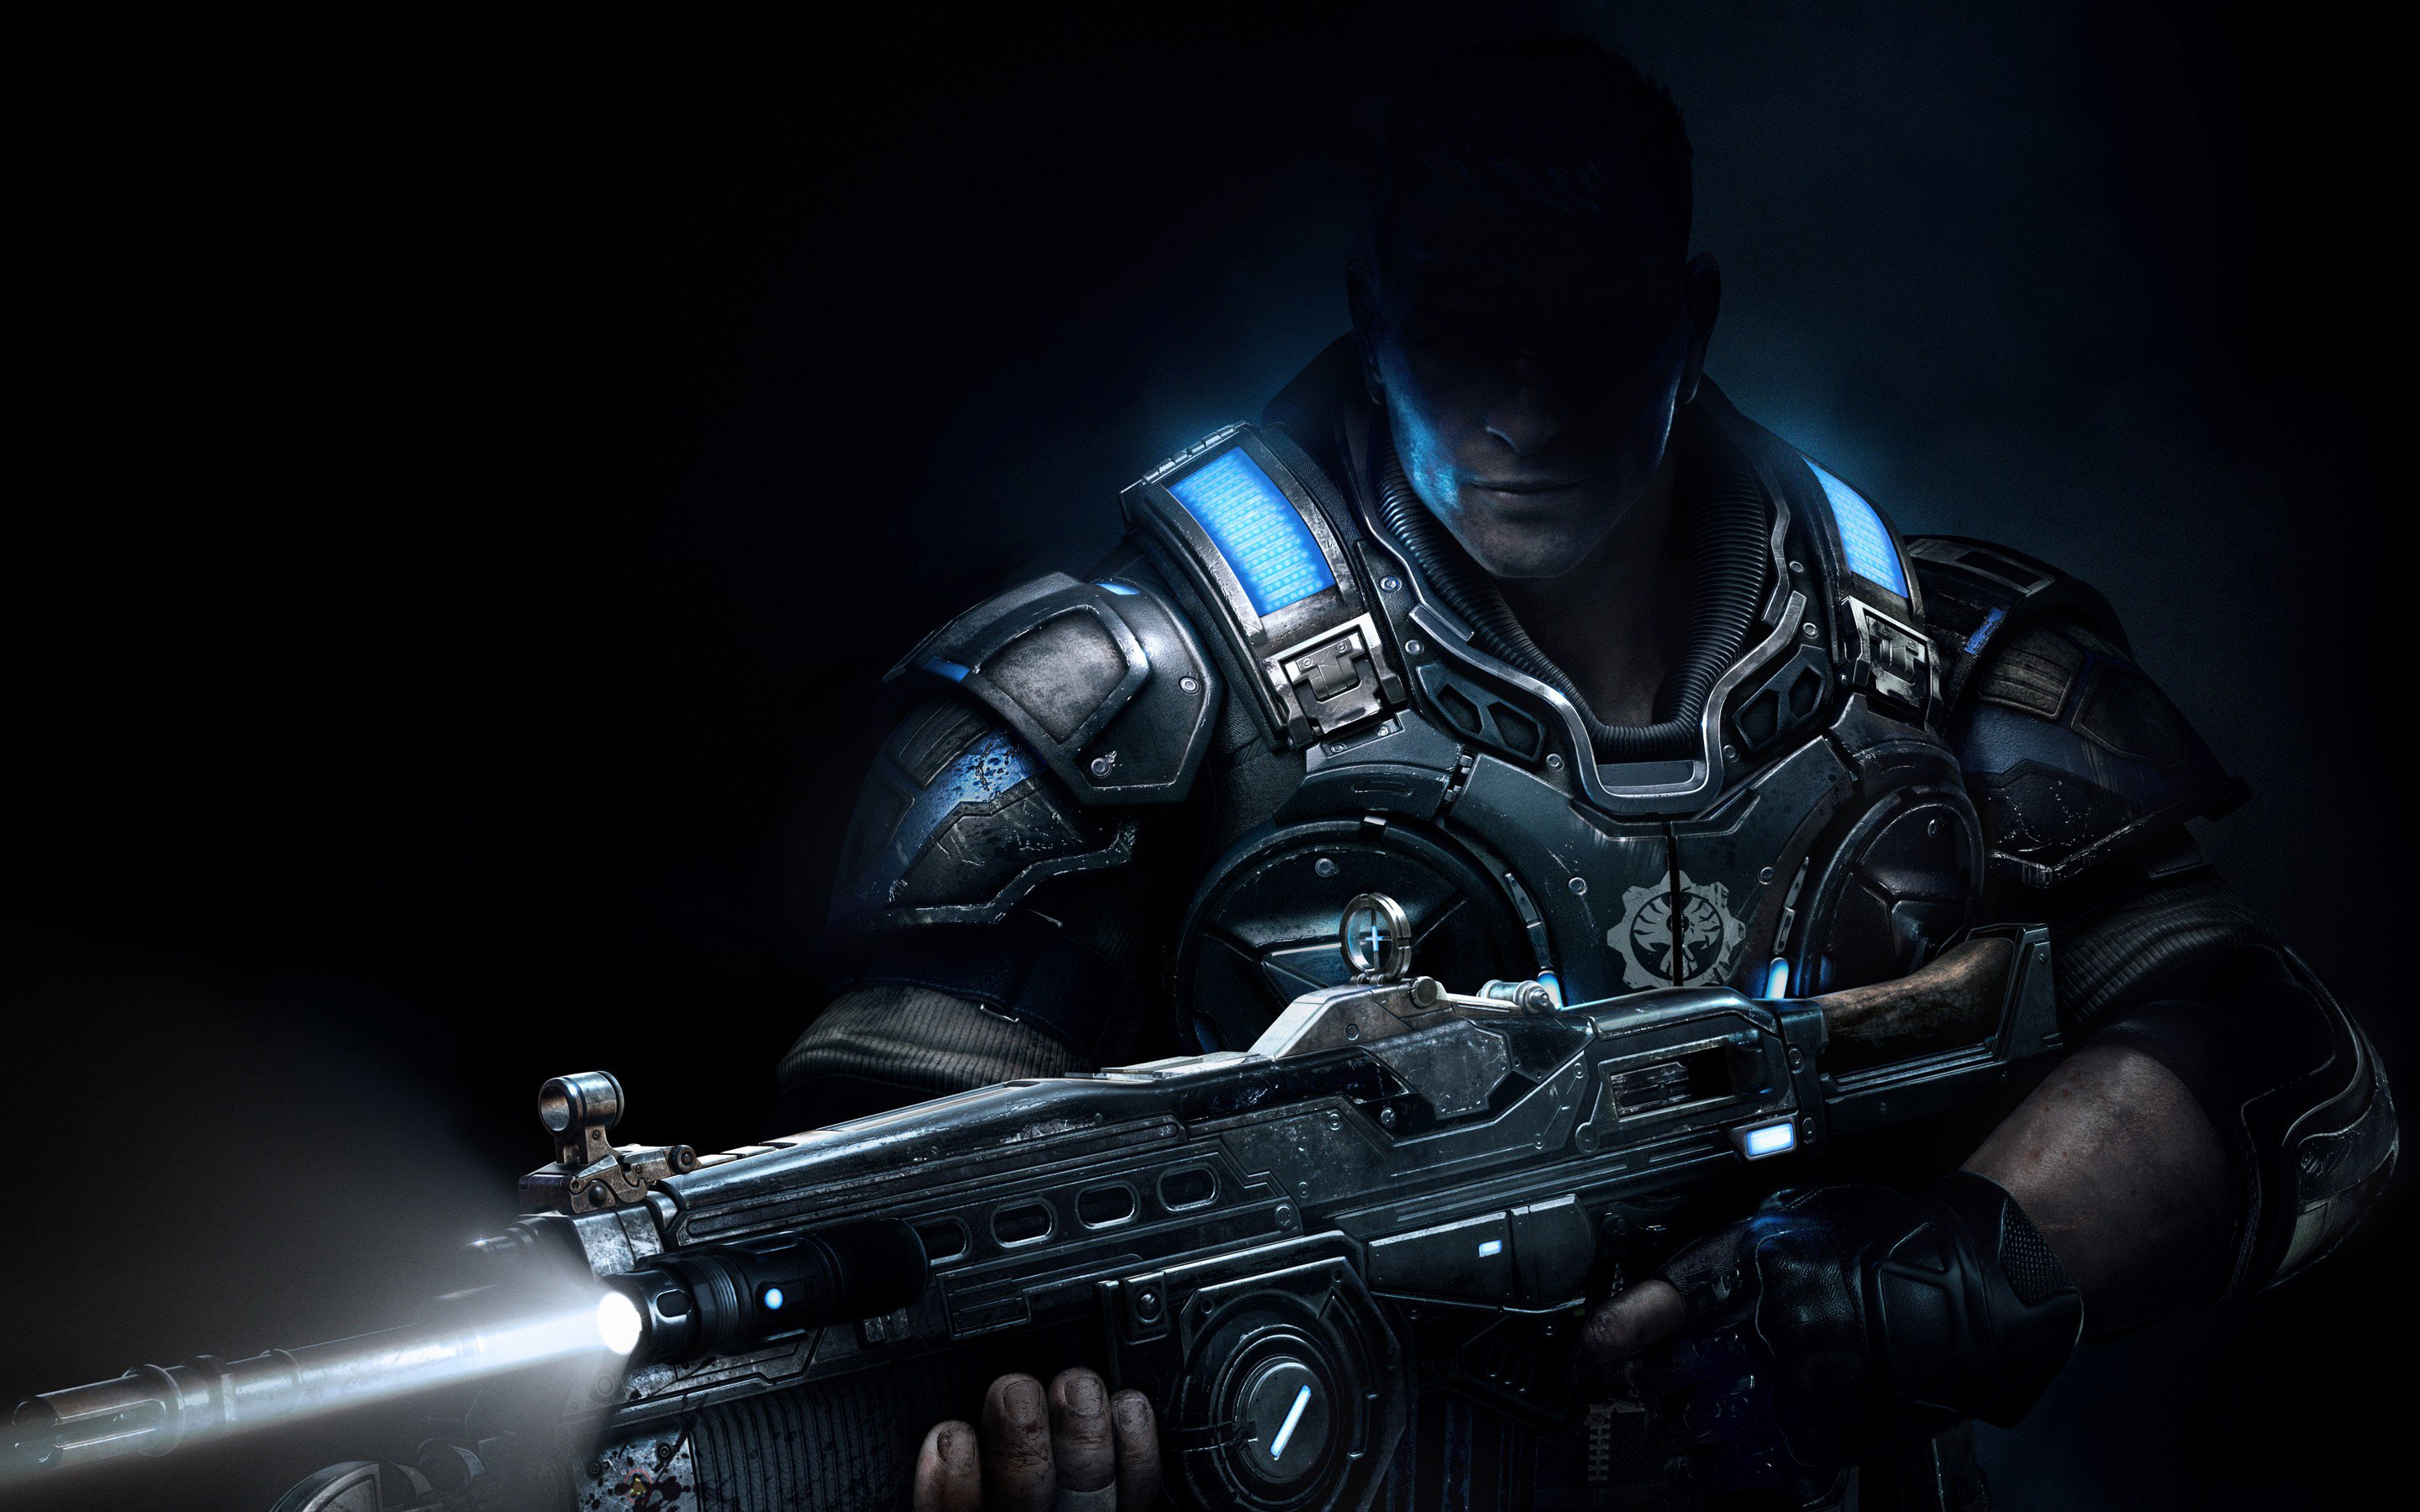 Gears Of War 4 Photos Gears Of War 4 Hd 1381619 Hd